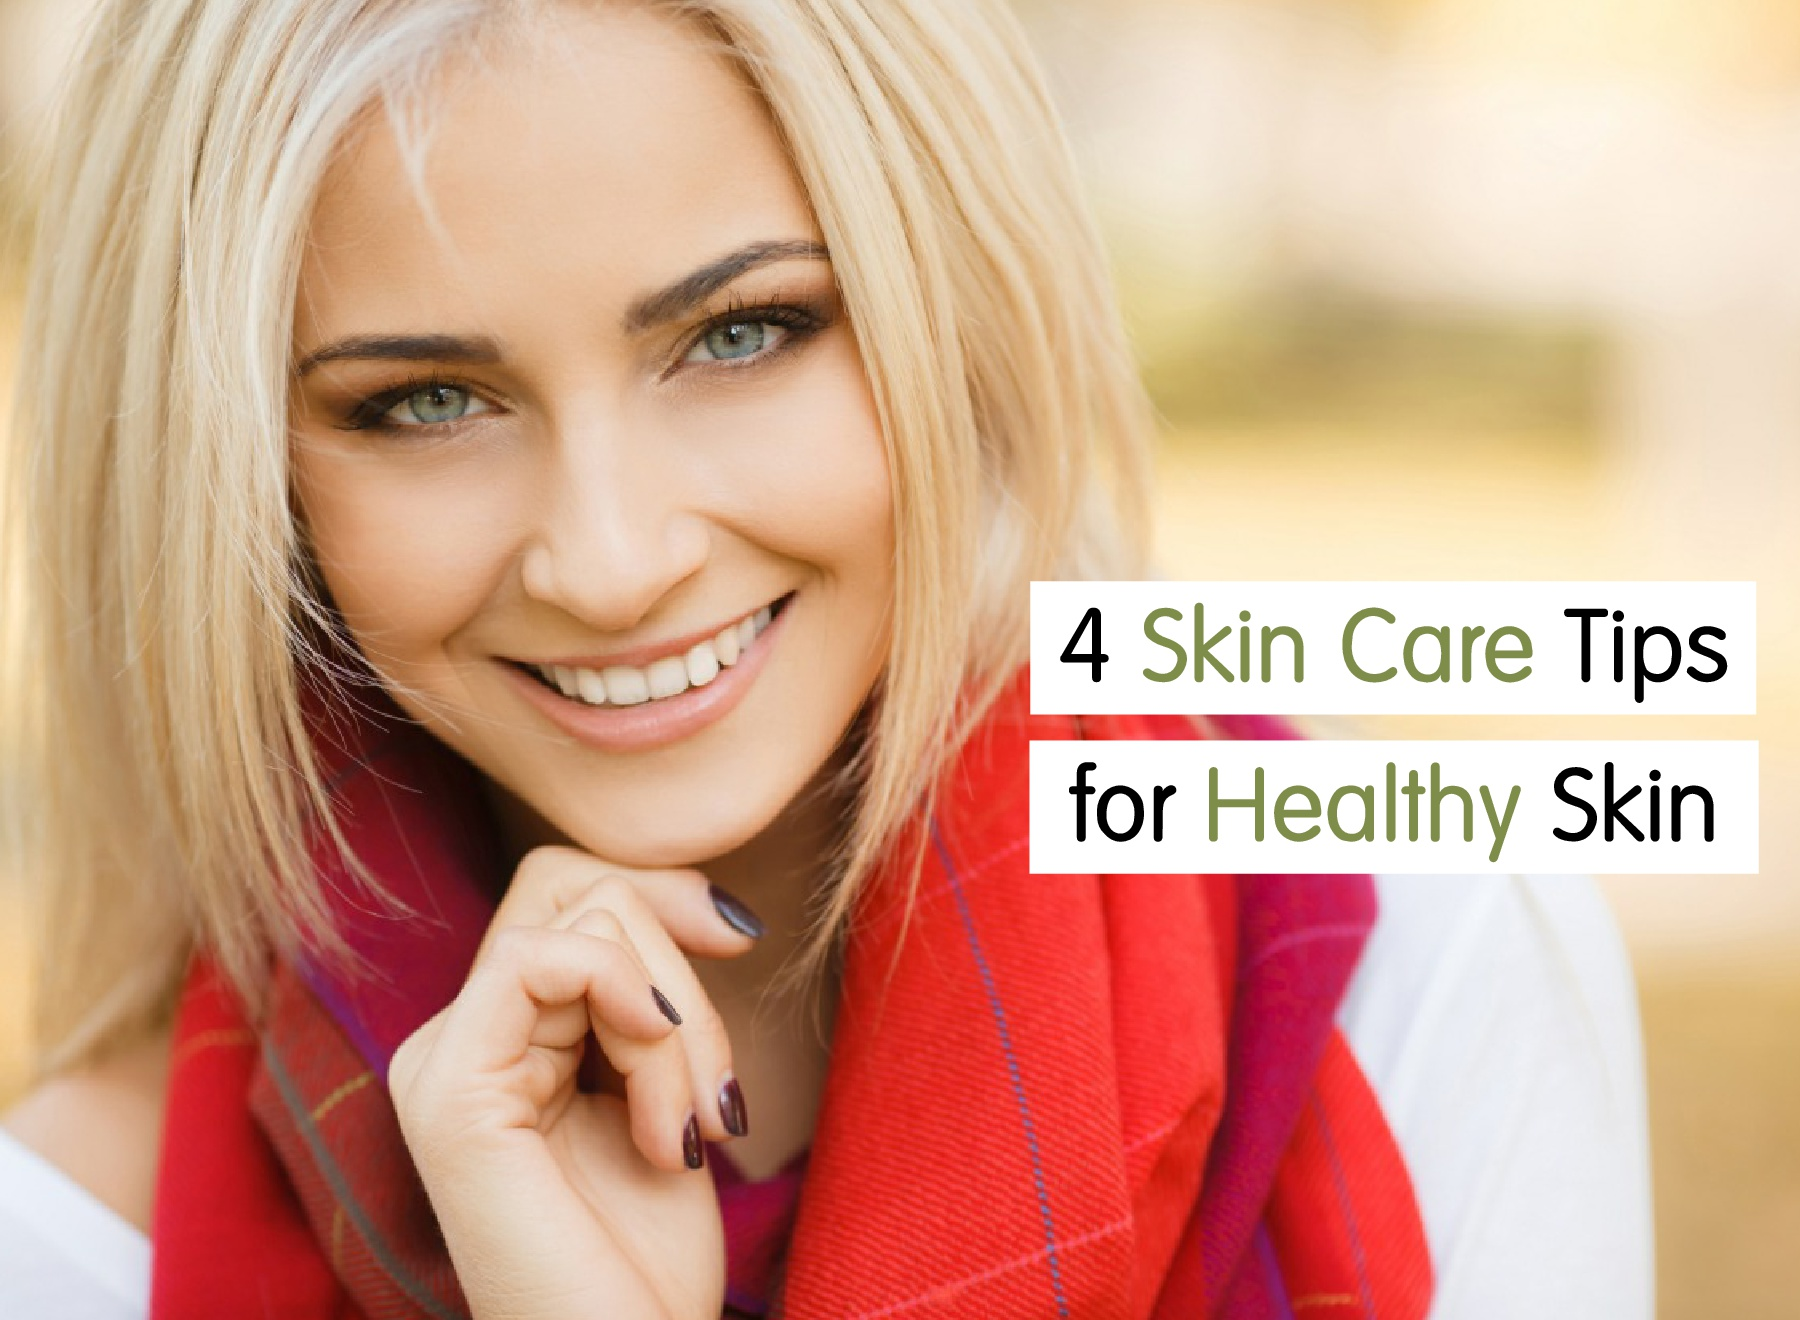 4 Must-Know Skin Care Tips for Healthy Skin